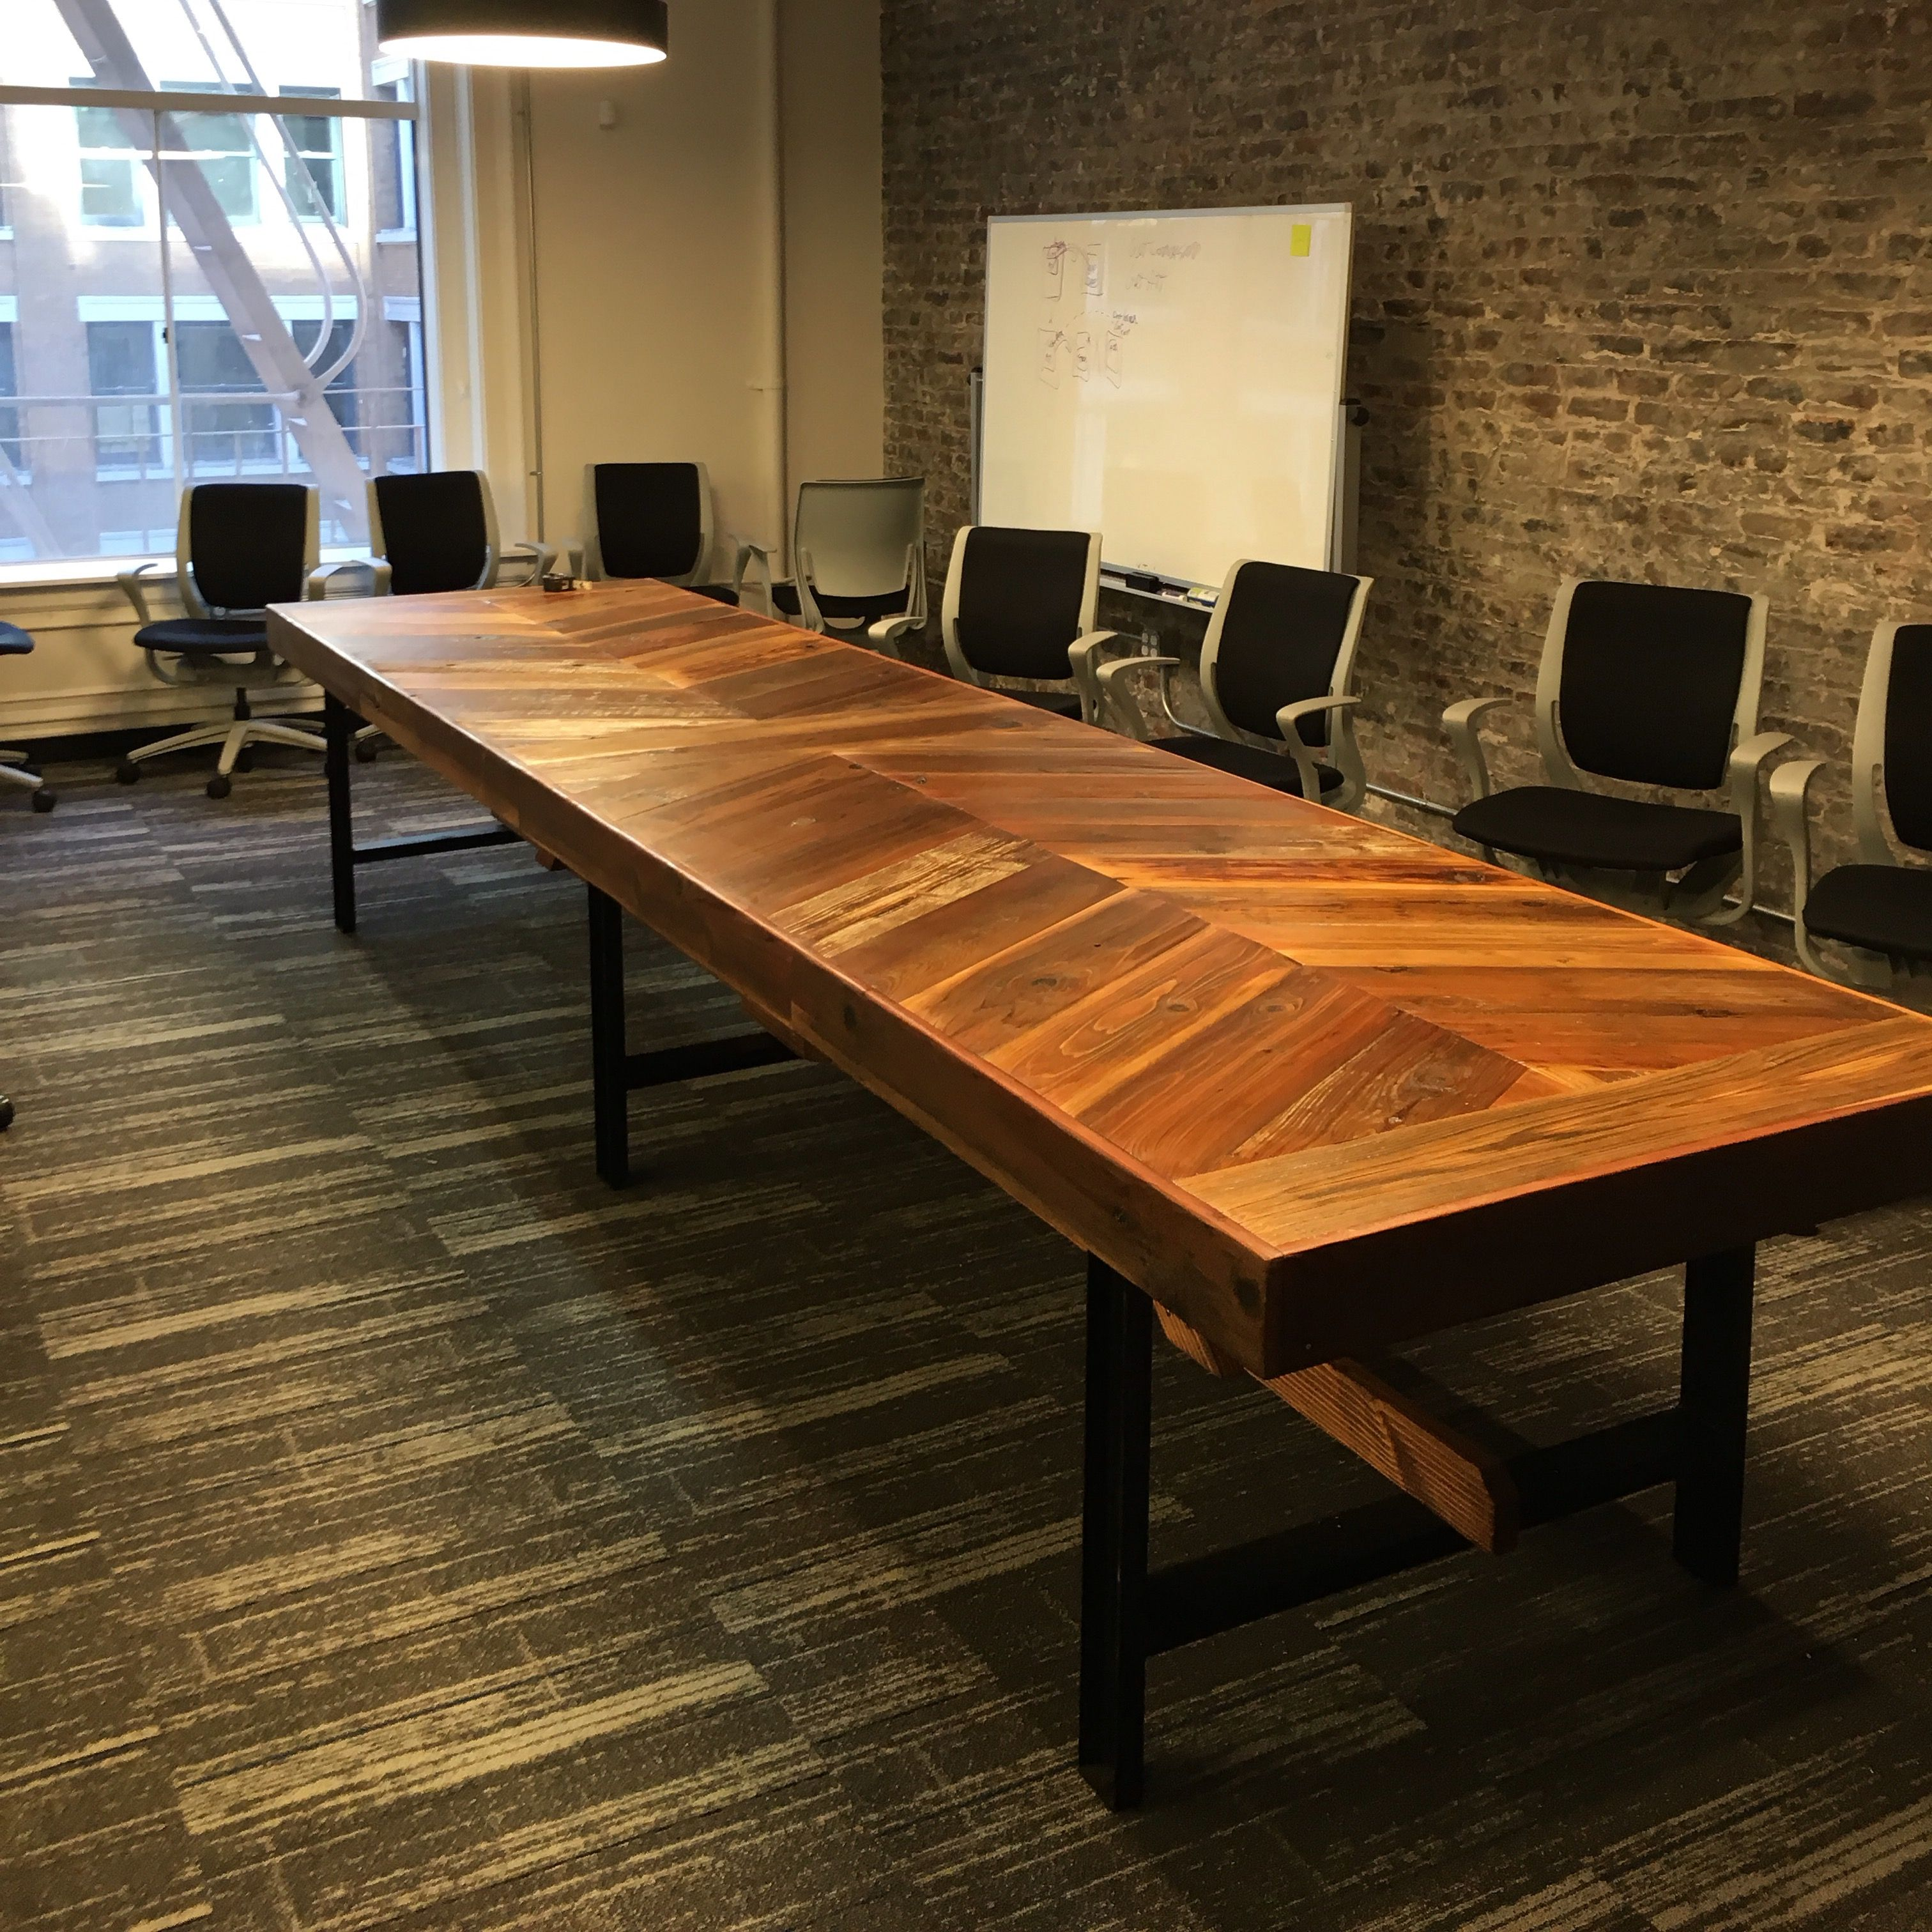 Hand Crafted Reclaimed Wood Chevron Conference Table by  : 564201006566 from www.custommade.com size 3024 x 3024 jpeg 1169kB